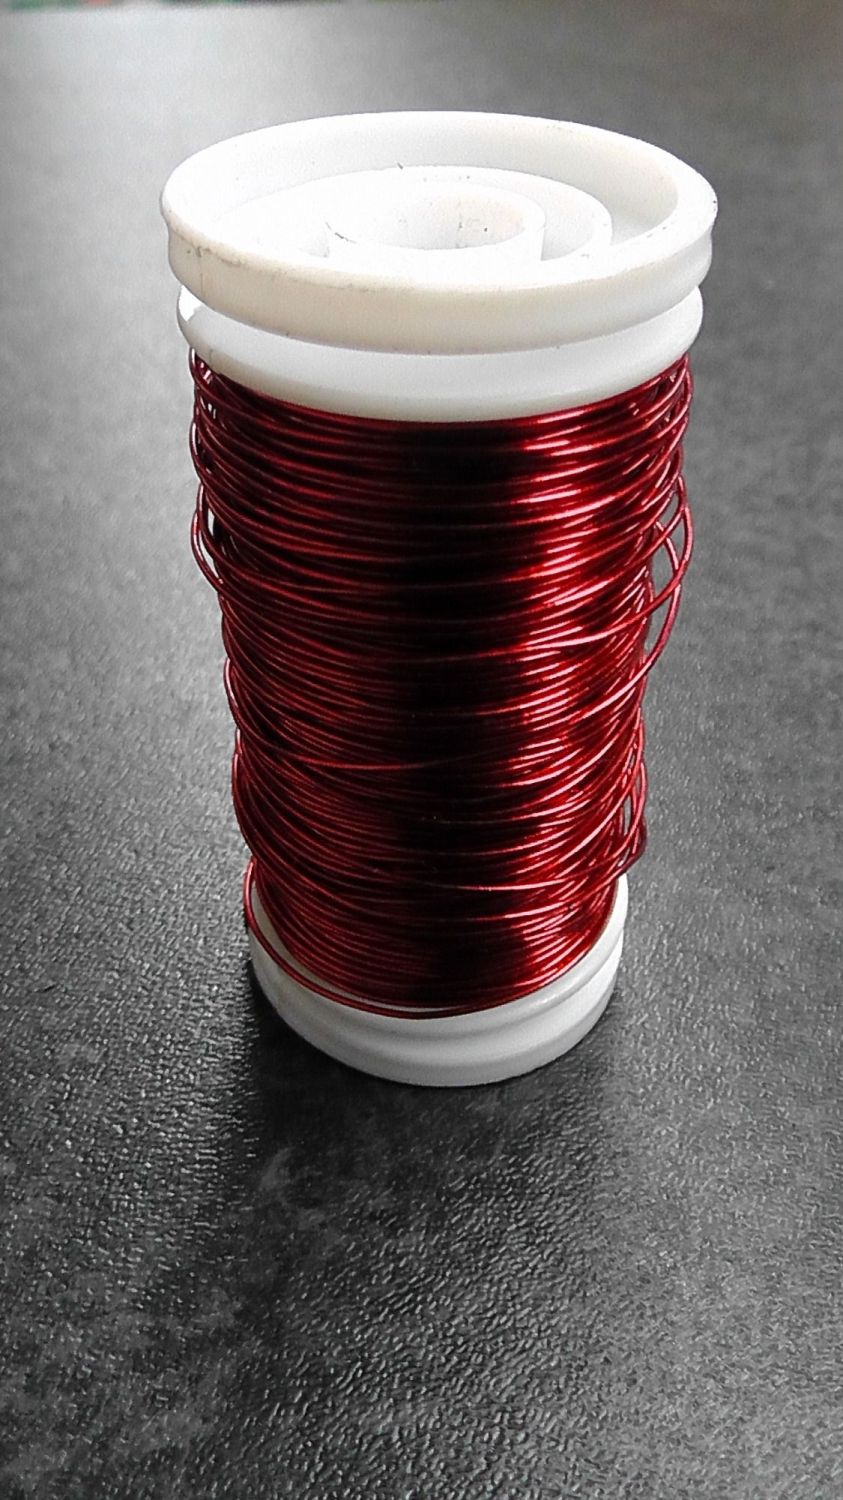 Metallic Reel Wire 100g Red